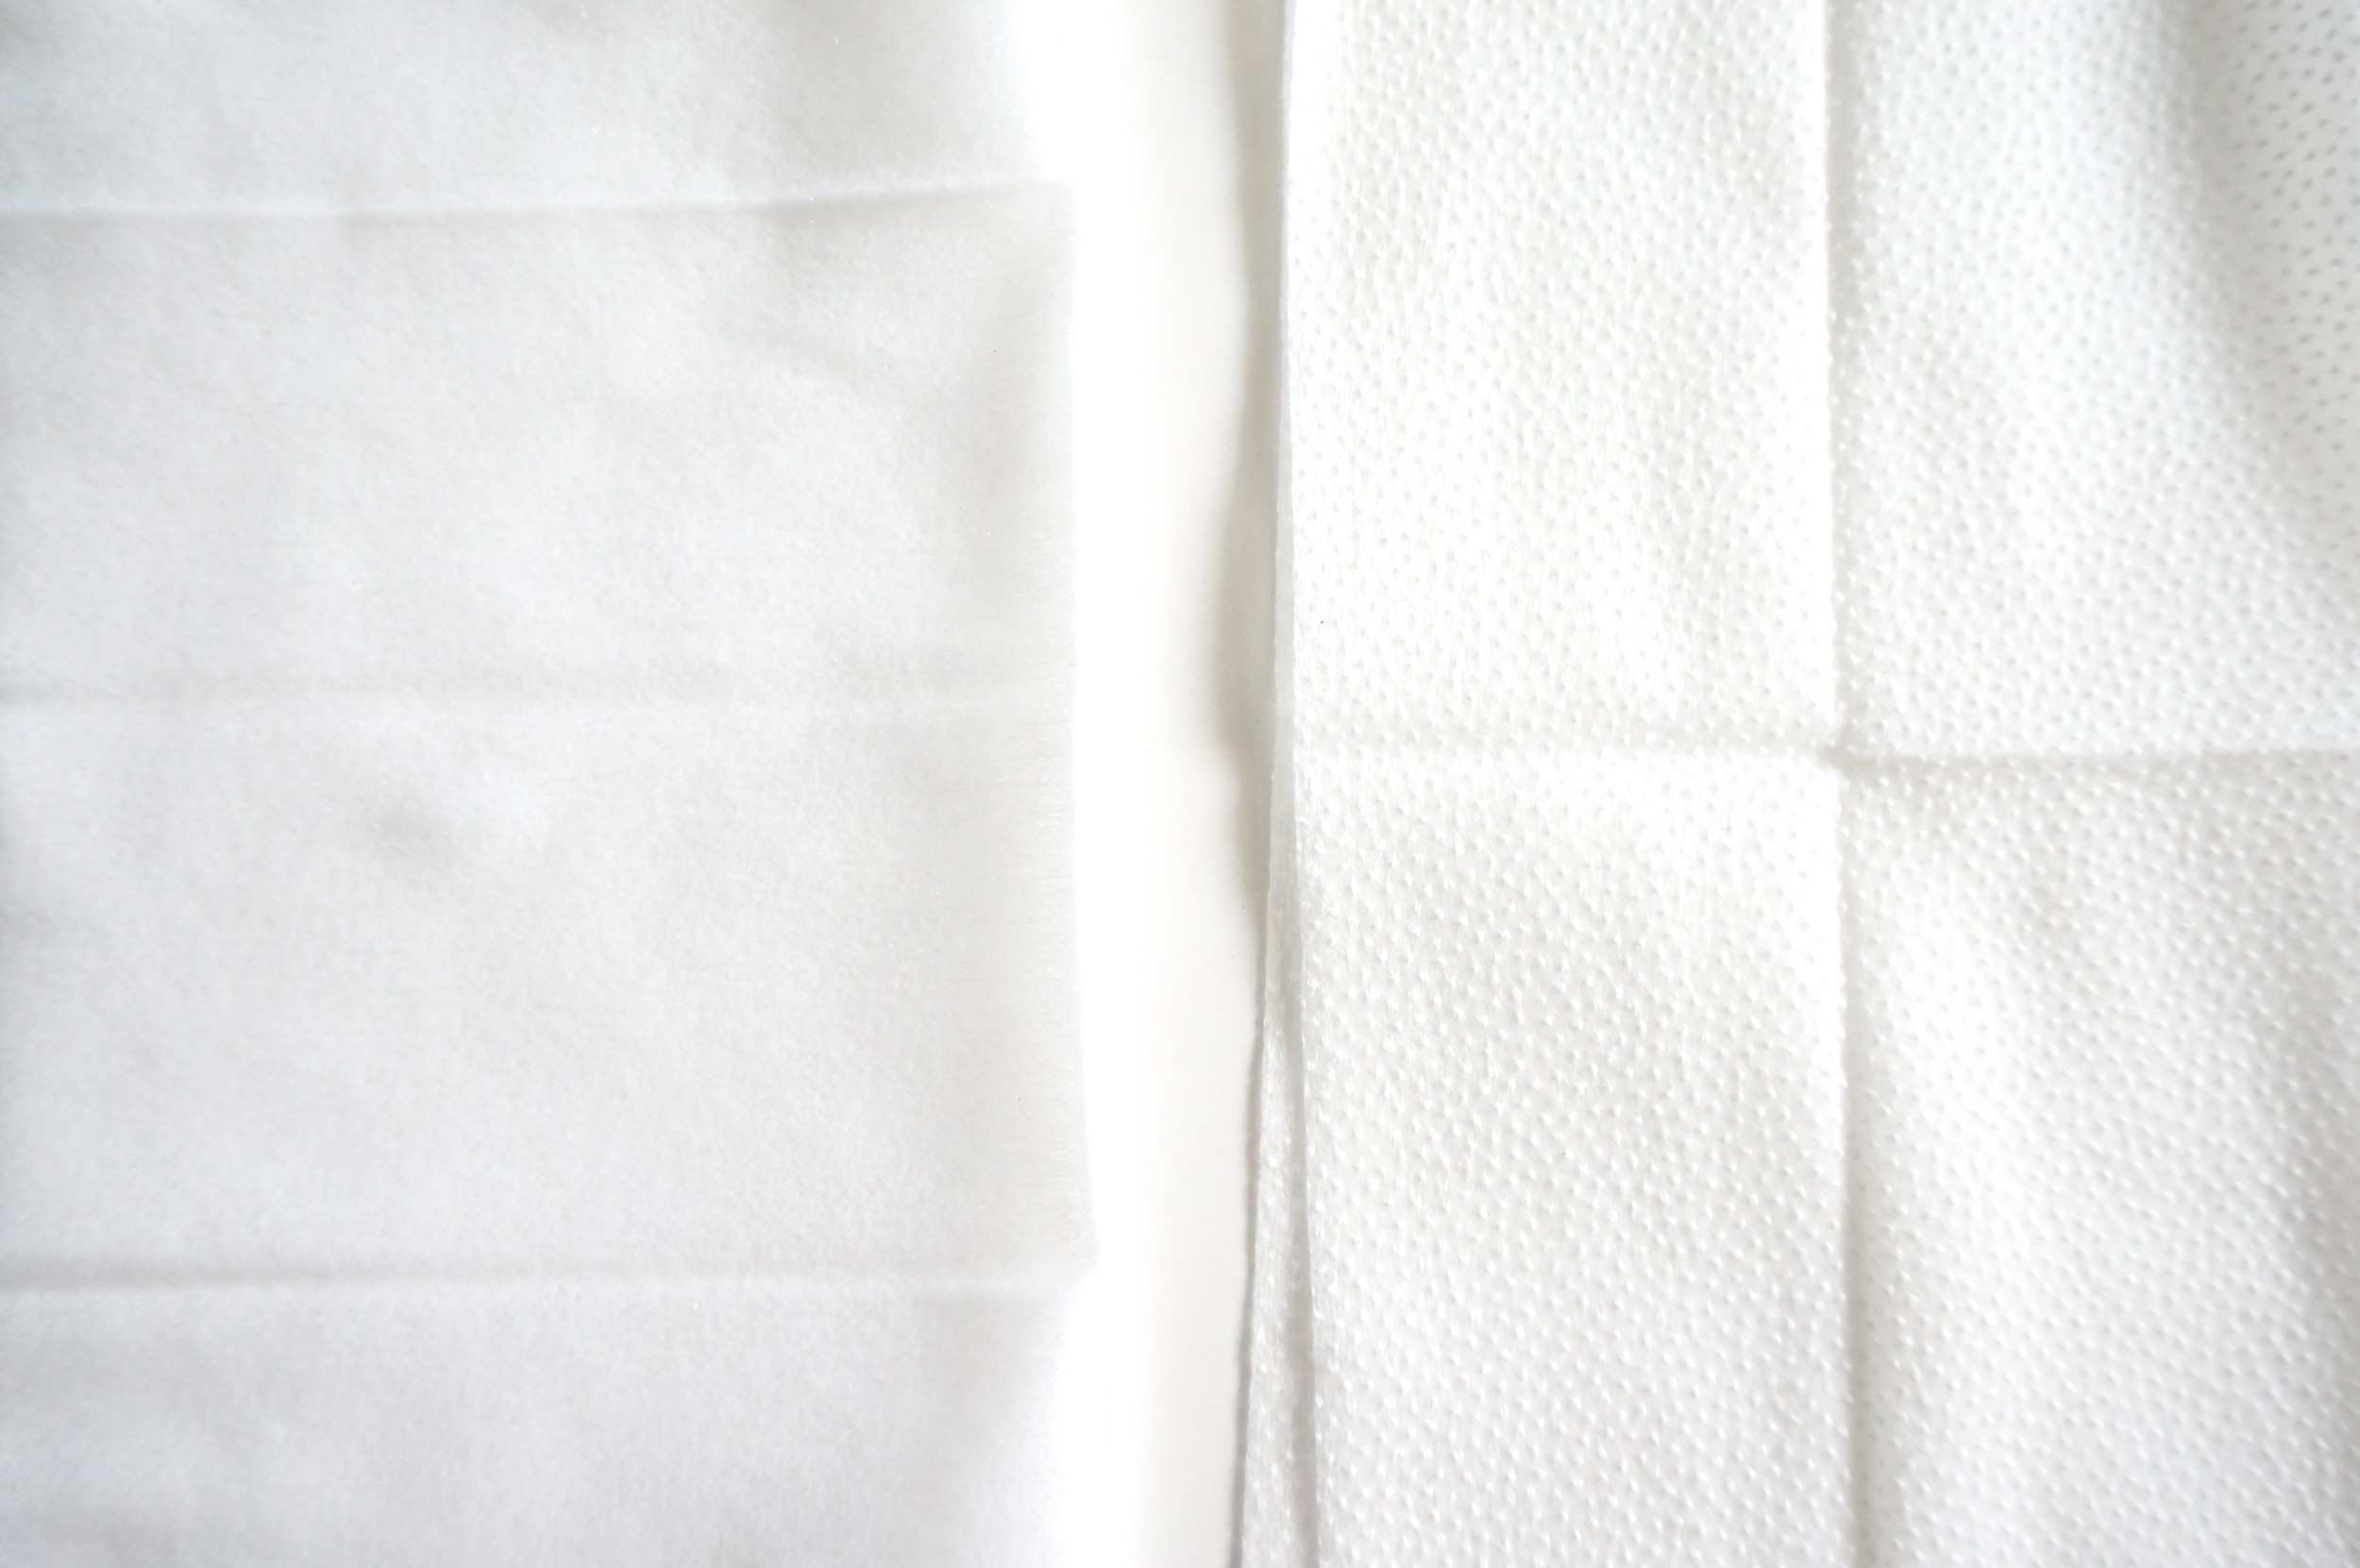 Gentle Facial Cleansing Wipes vs Exfoliating Wipes: My advice, get both, and use them as needed.